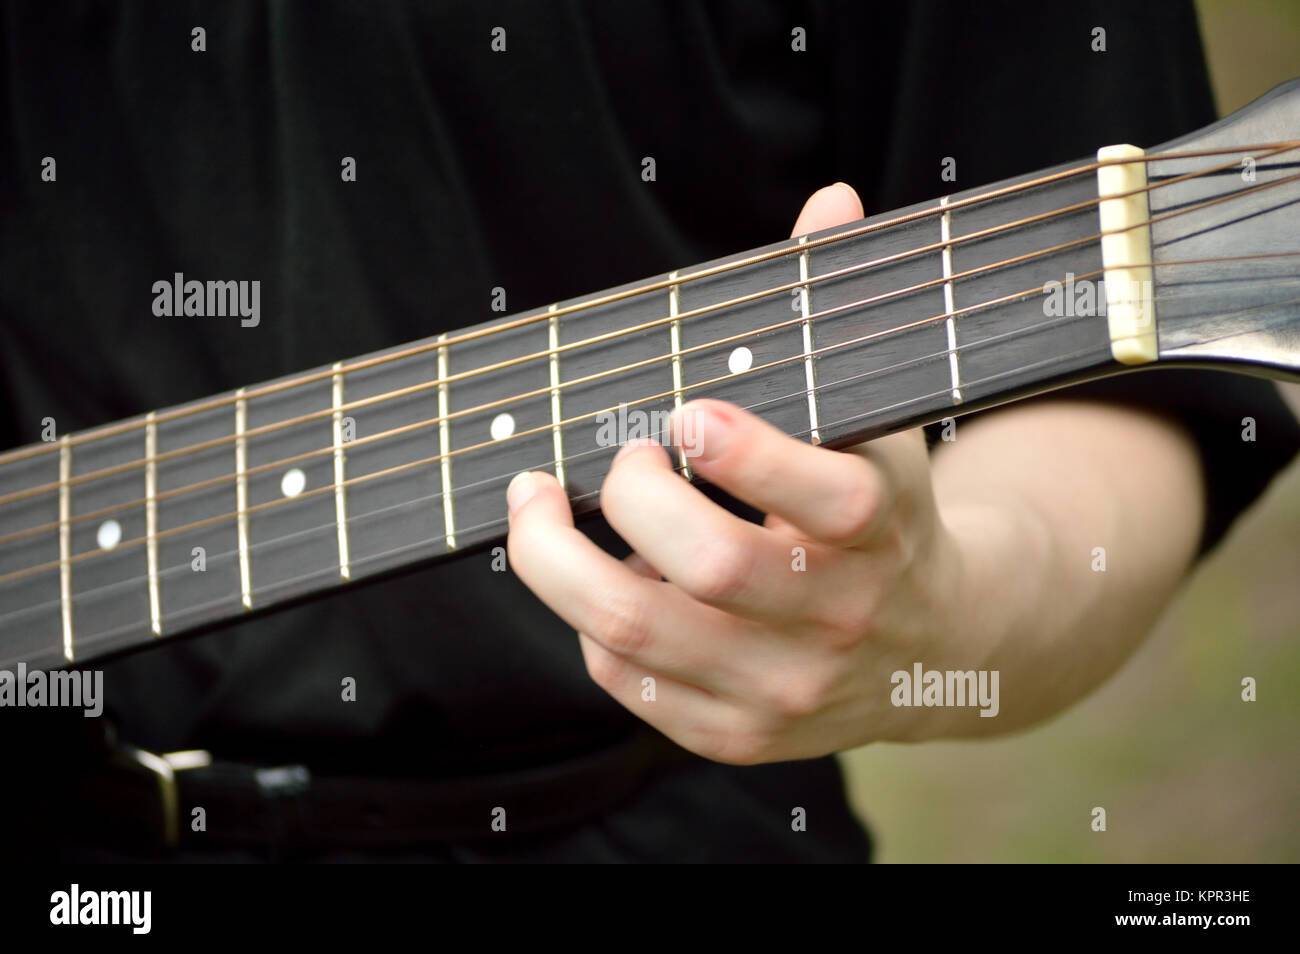 E Guitar Chord Stock Photos E Guitar Chord Stock Images Alamy